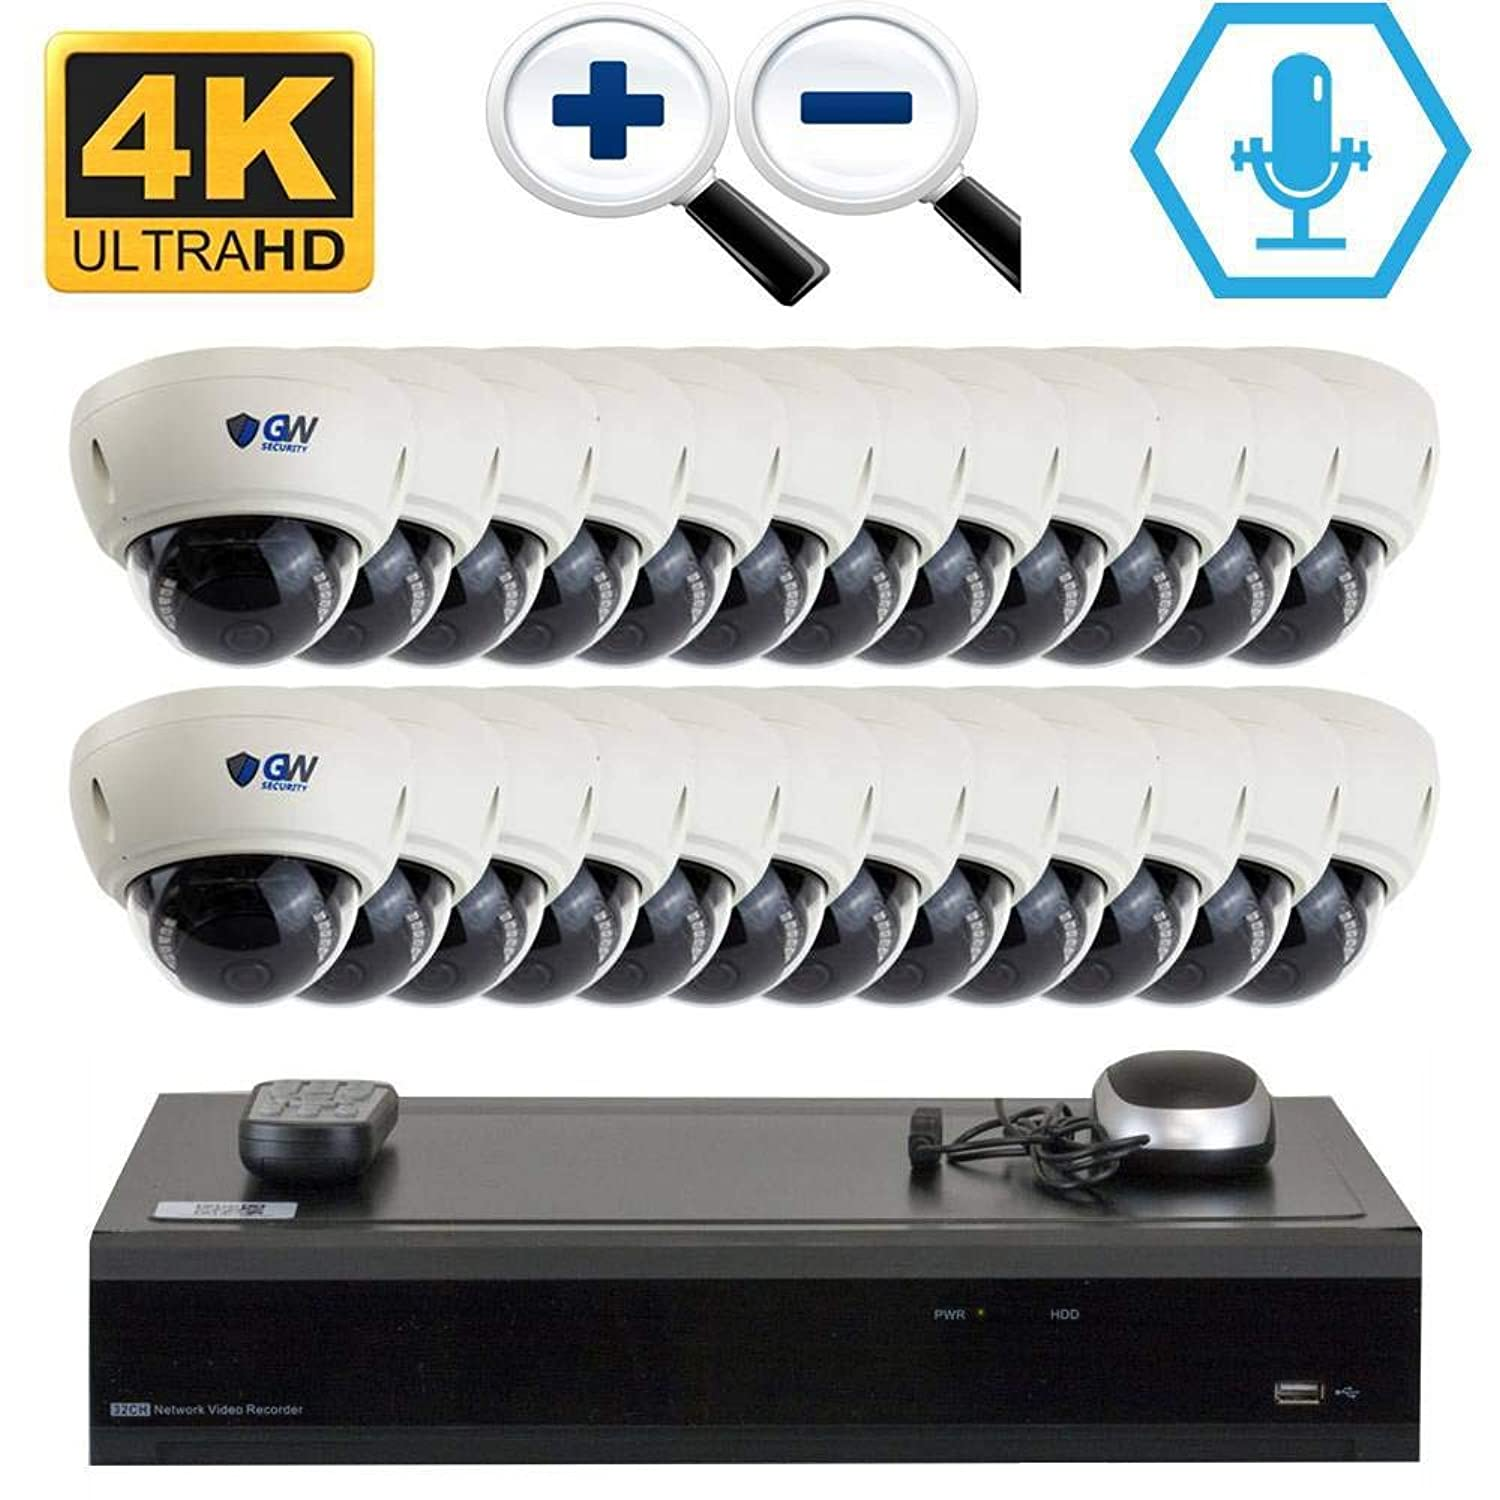 GW 32CH H.265 PoE NVR Ultra-HD 4K (3840x2160) Video & Audio Security Camera System with 24 x 4K (8MP) Microphone 3X Motorized Zoom IP Dome Camera, 100ft Night Vision, 16TB HDD